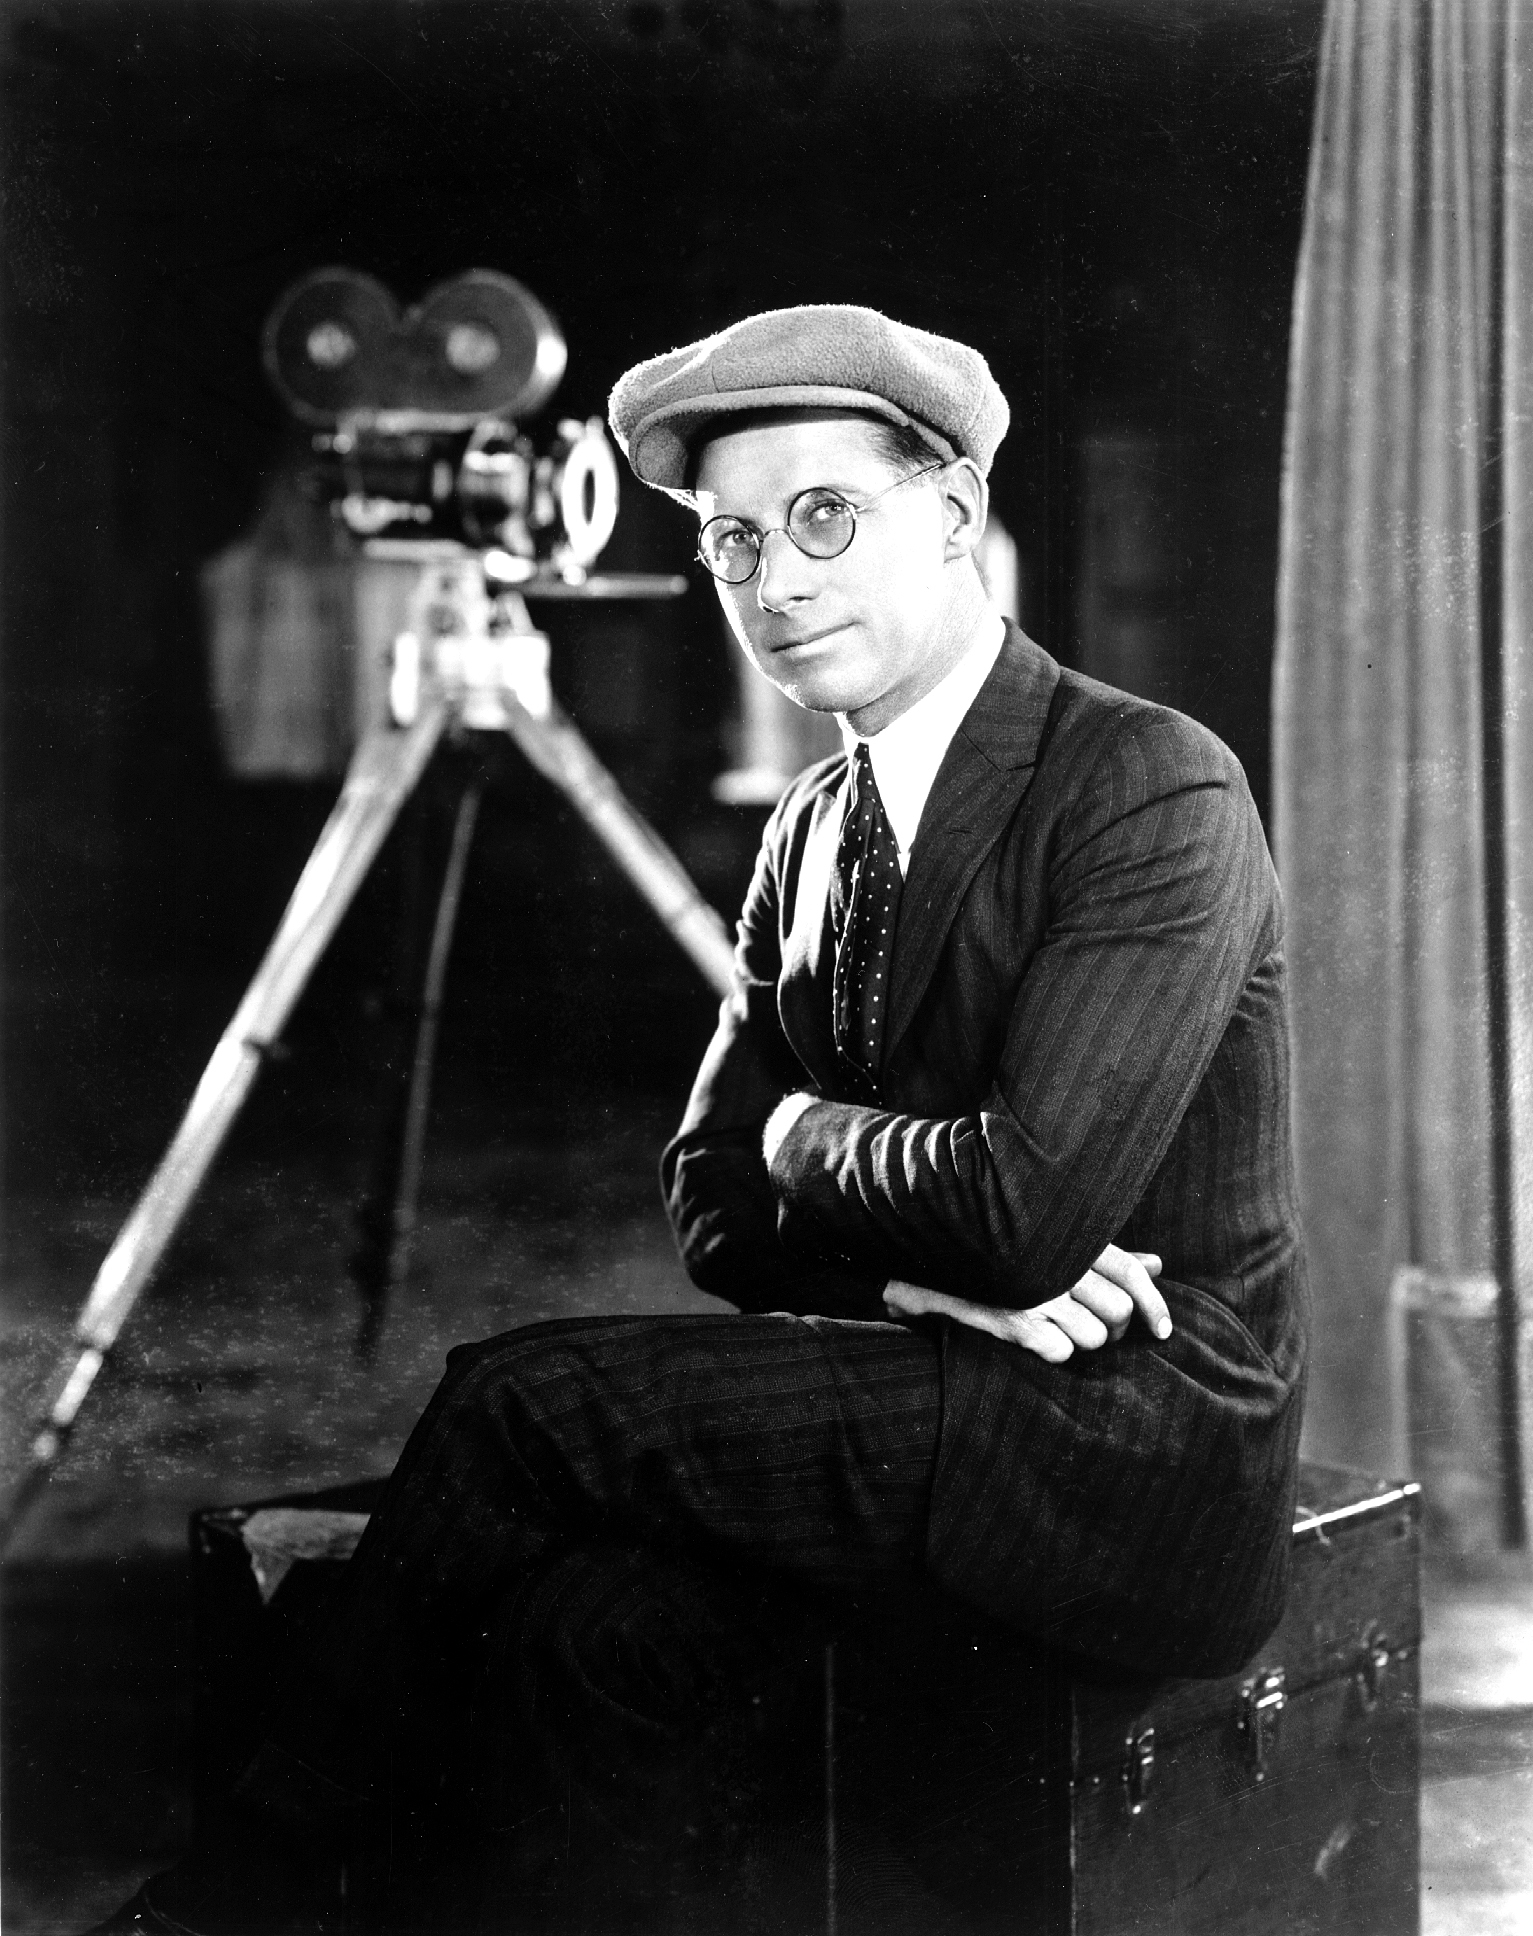 Here's Homer A. Scott in the 1920s, during his days as comedy king Mack  Sennett's lead feature cinematographer.